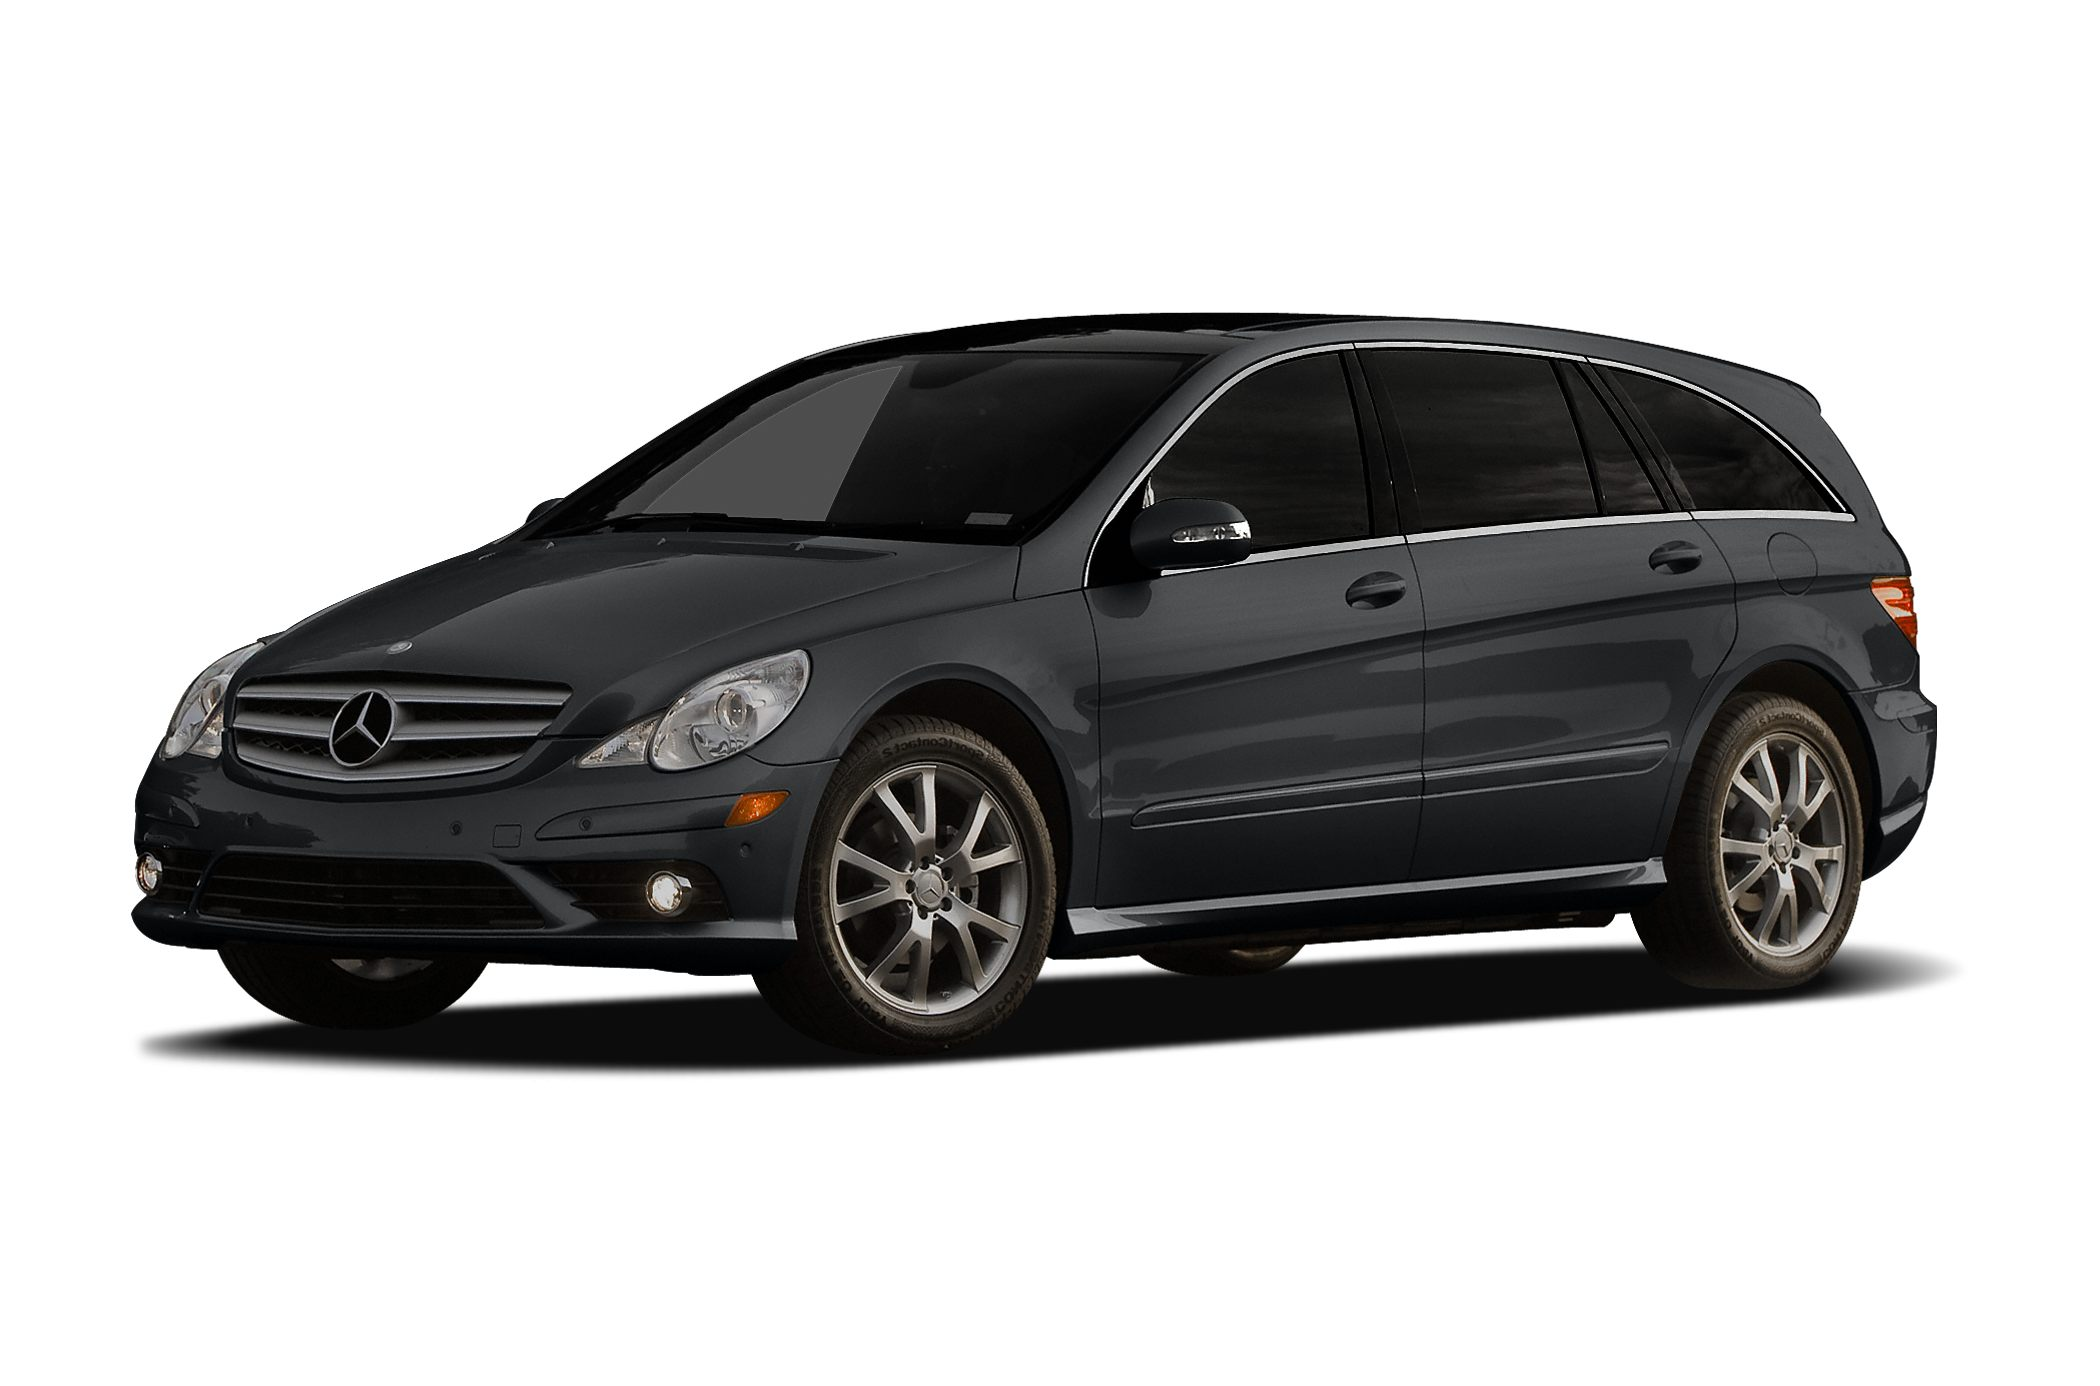 New and used mercedes benz wagons for sale in florida fl for 2010 mercedes benz e350 wagon for sale